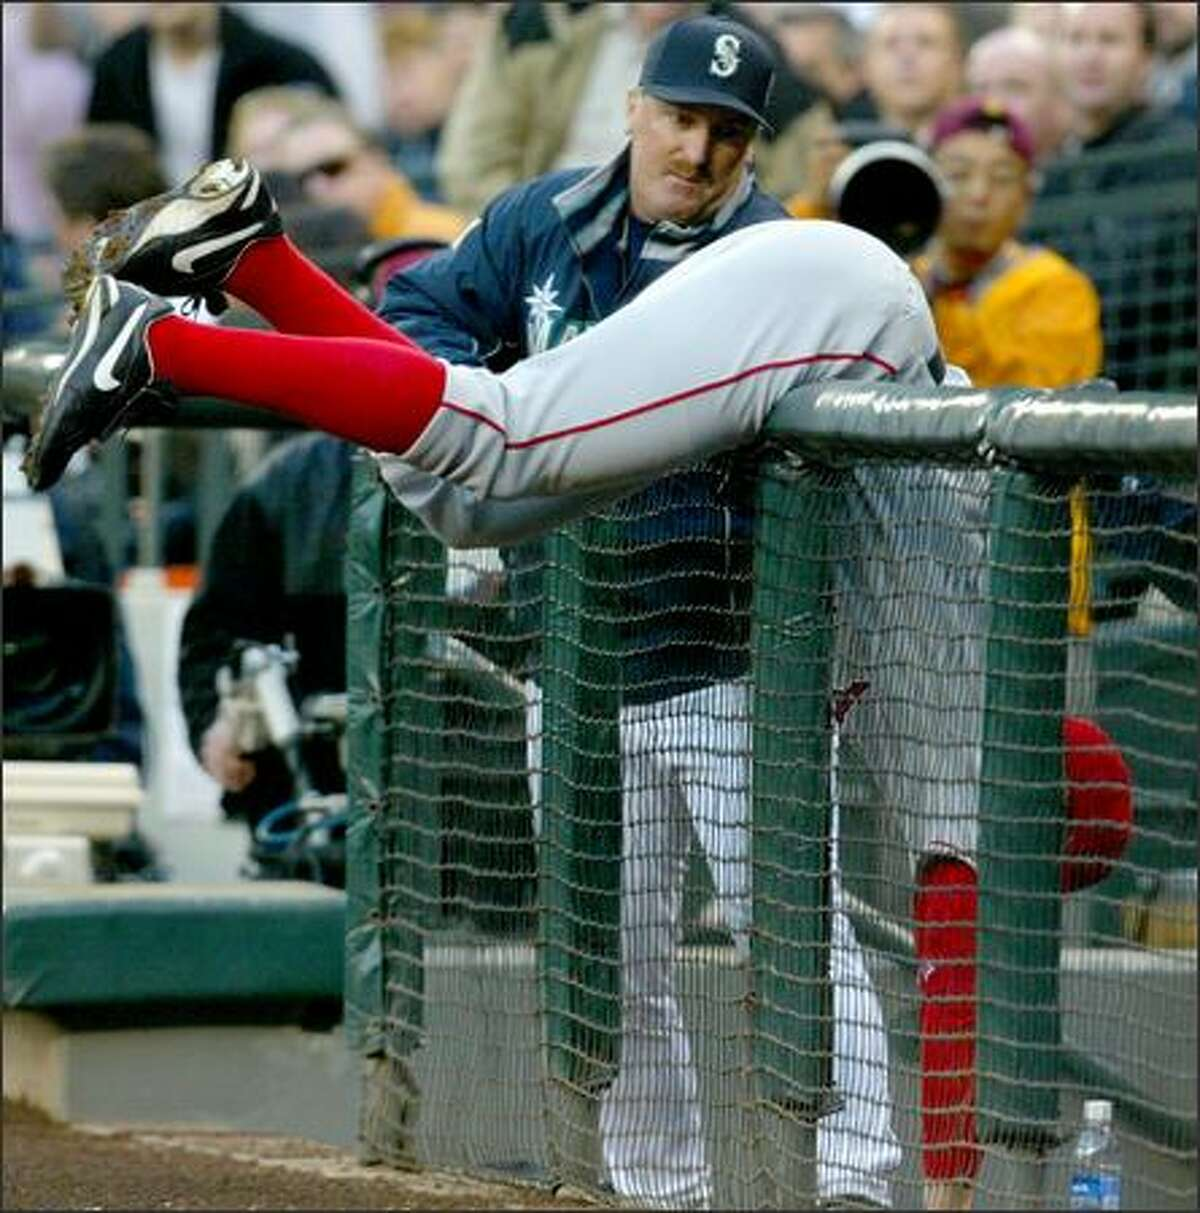 Angels first baseman Darin Erstad hangs over the railing protecting the Mariners dugout as he fails to catch a Bret Boone foul popup.